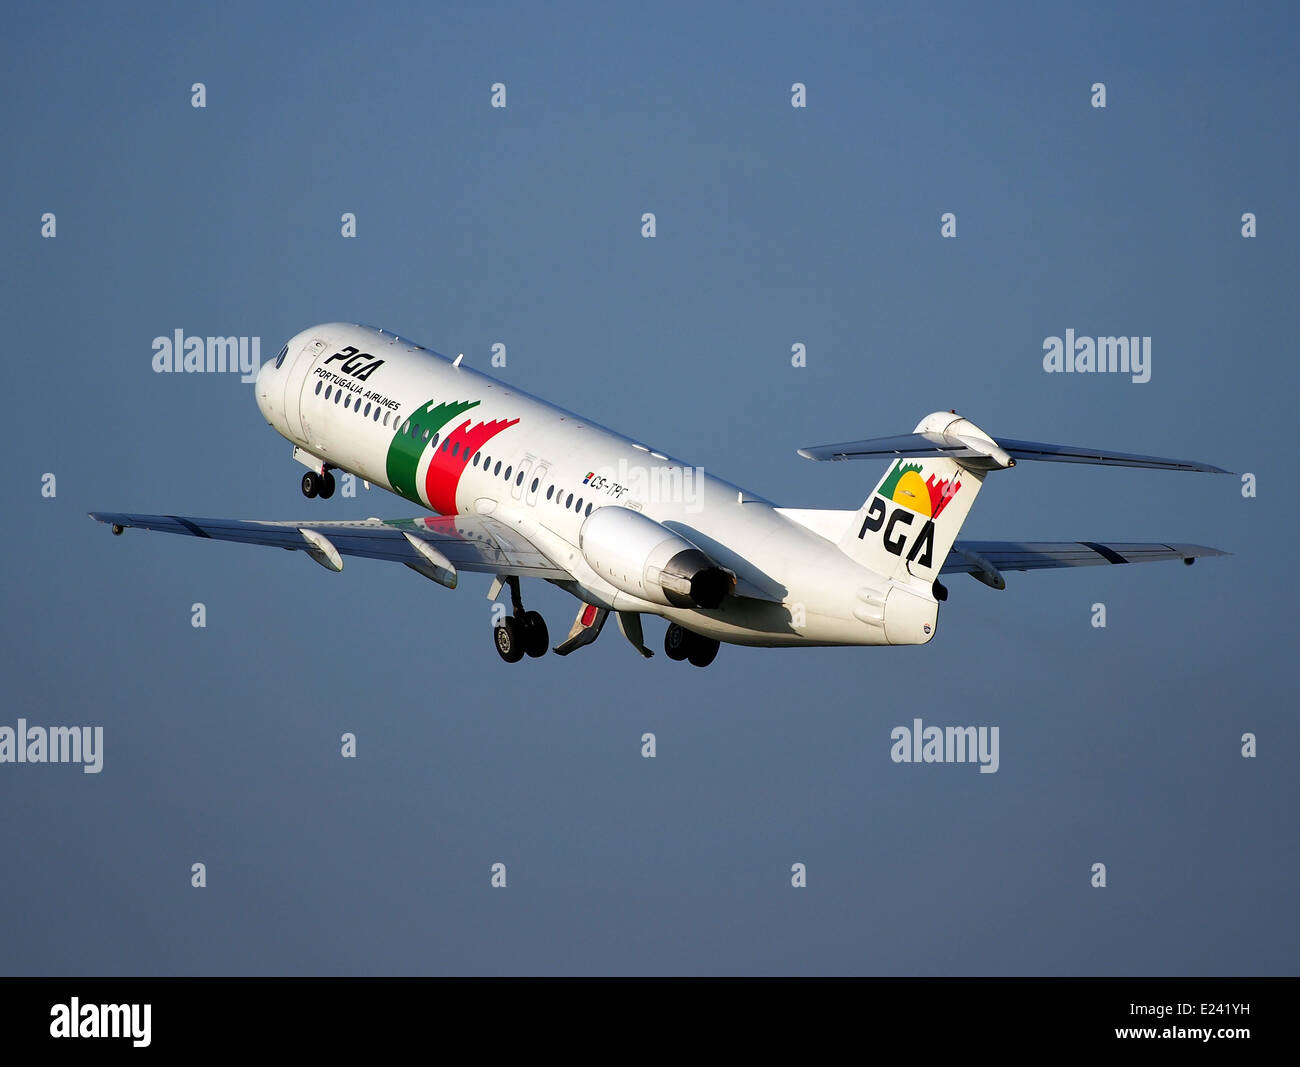 CS-TPF PGA Portugalia Fokker 100 take-off from Schiphol (AMS - EHAM), The Netherlands, 17may2014, pic-3 - Stock Image